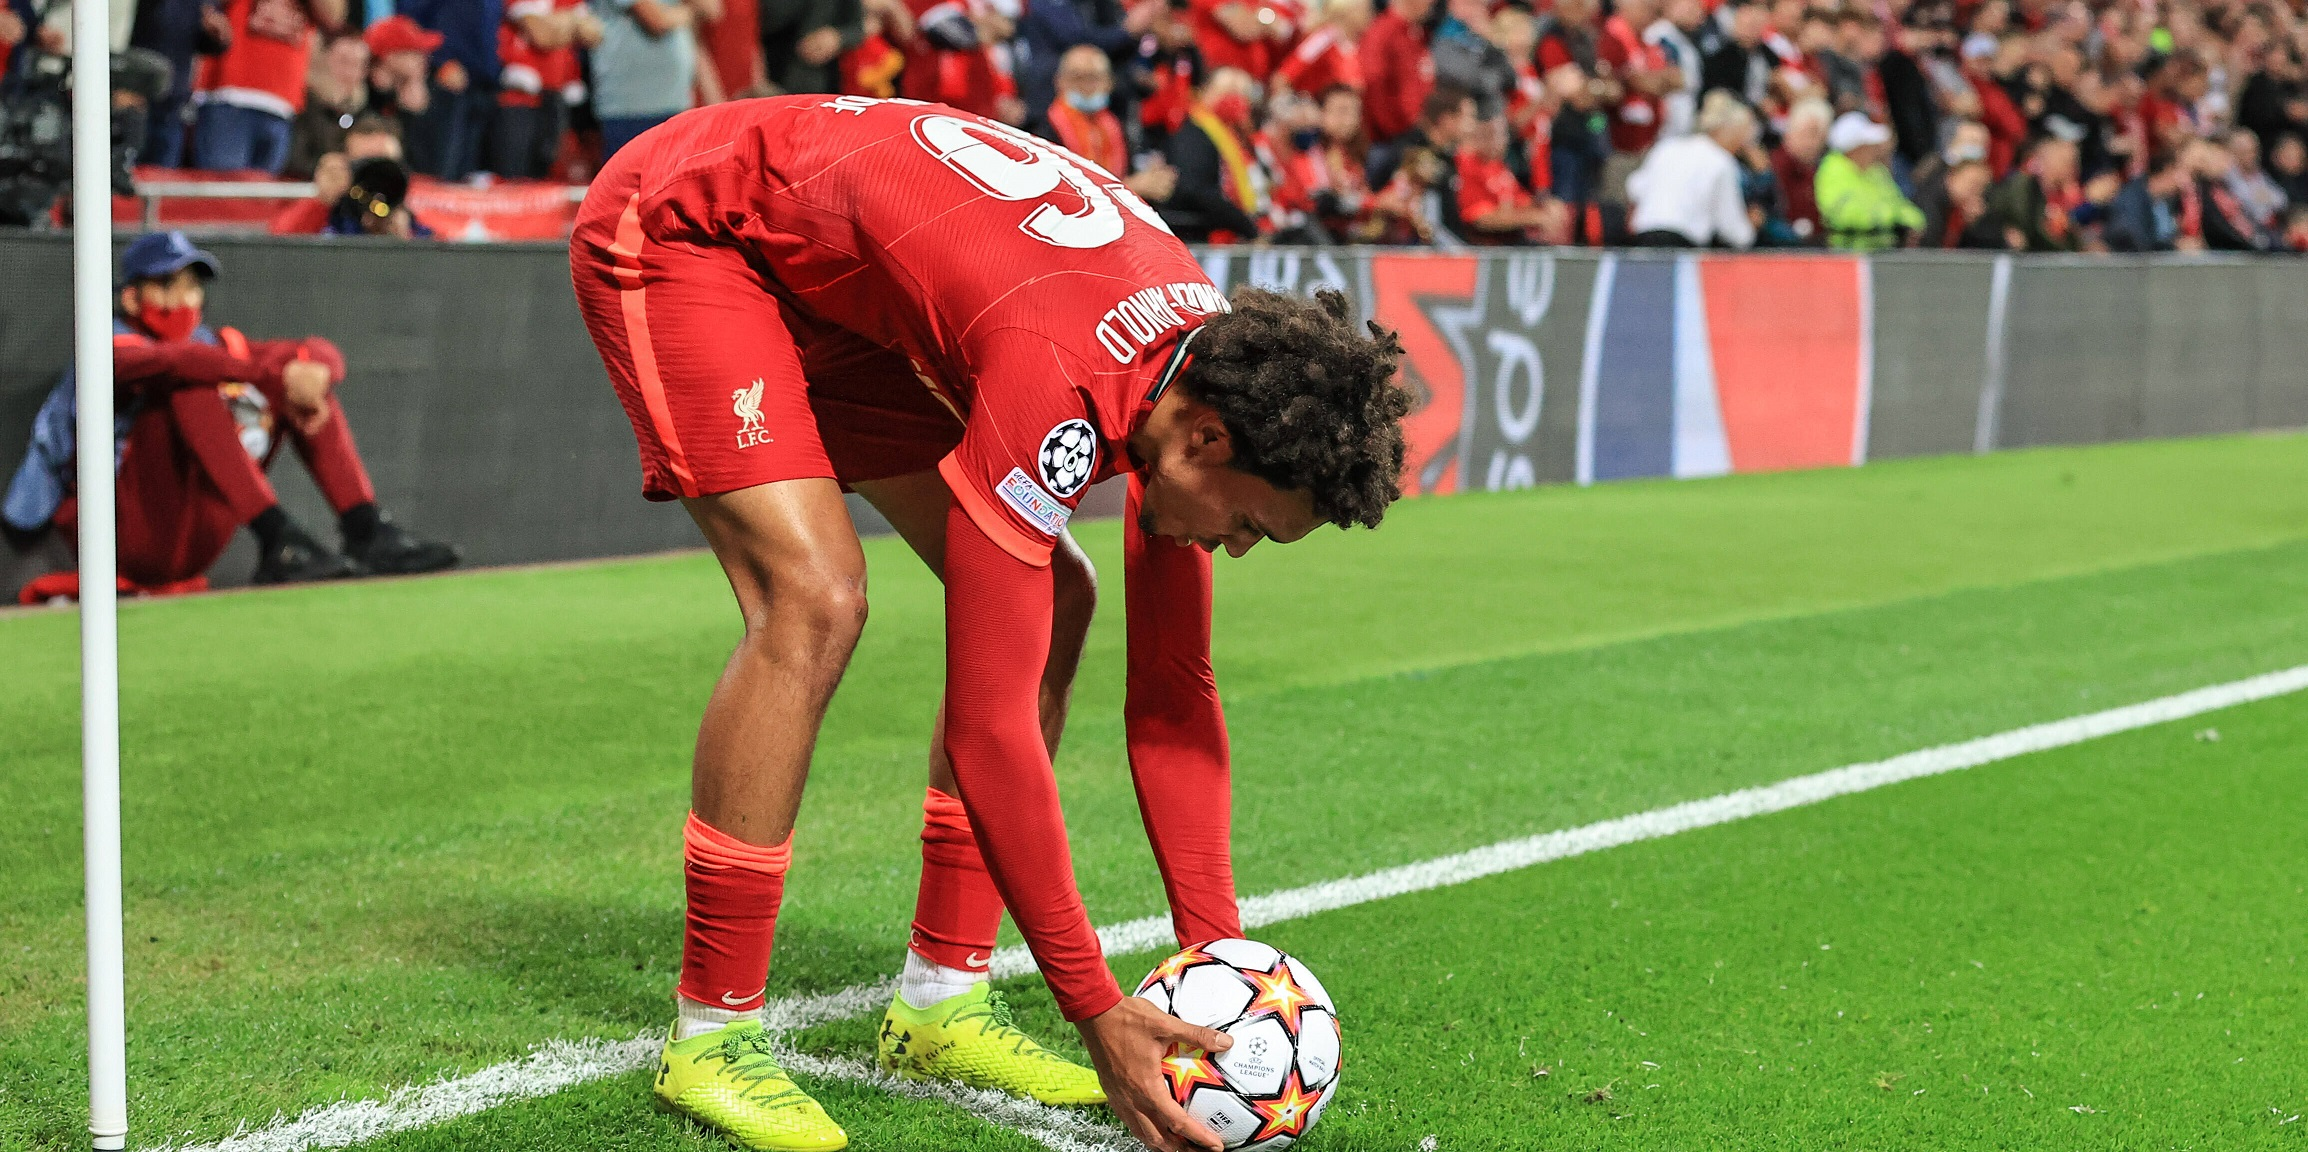 Liverpool's crazy set-piece stat discovered by Reddit user suggests Reds have potent advantage over rivals